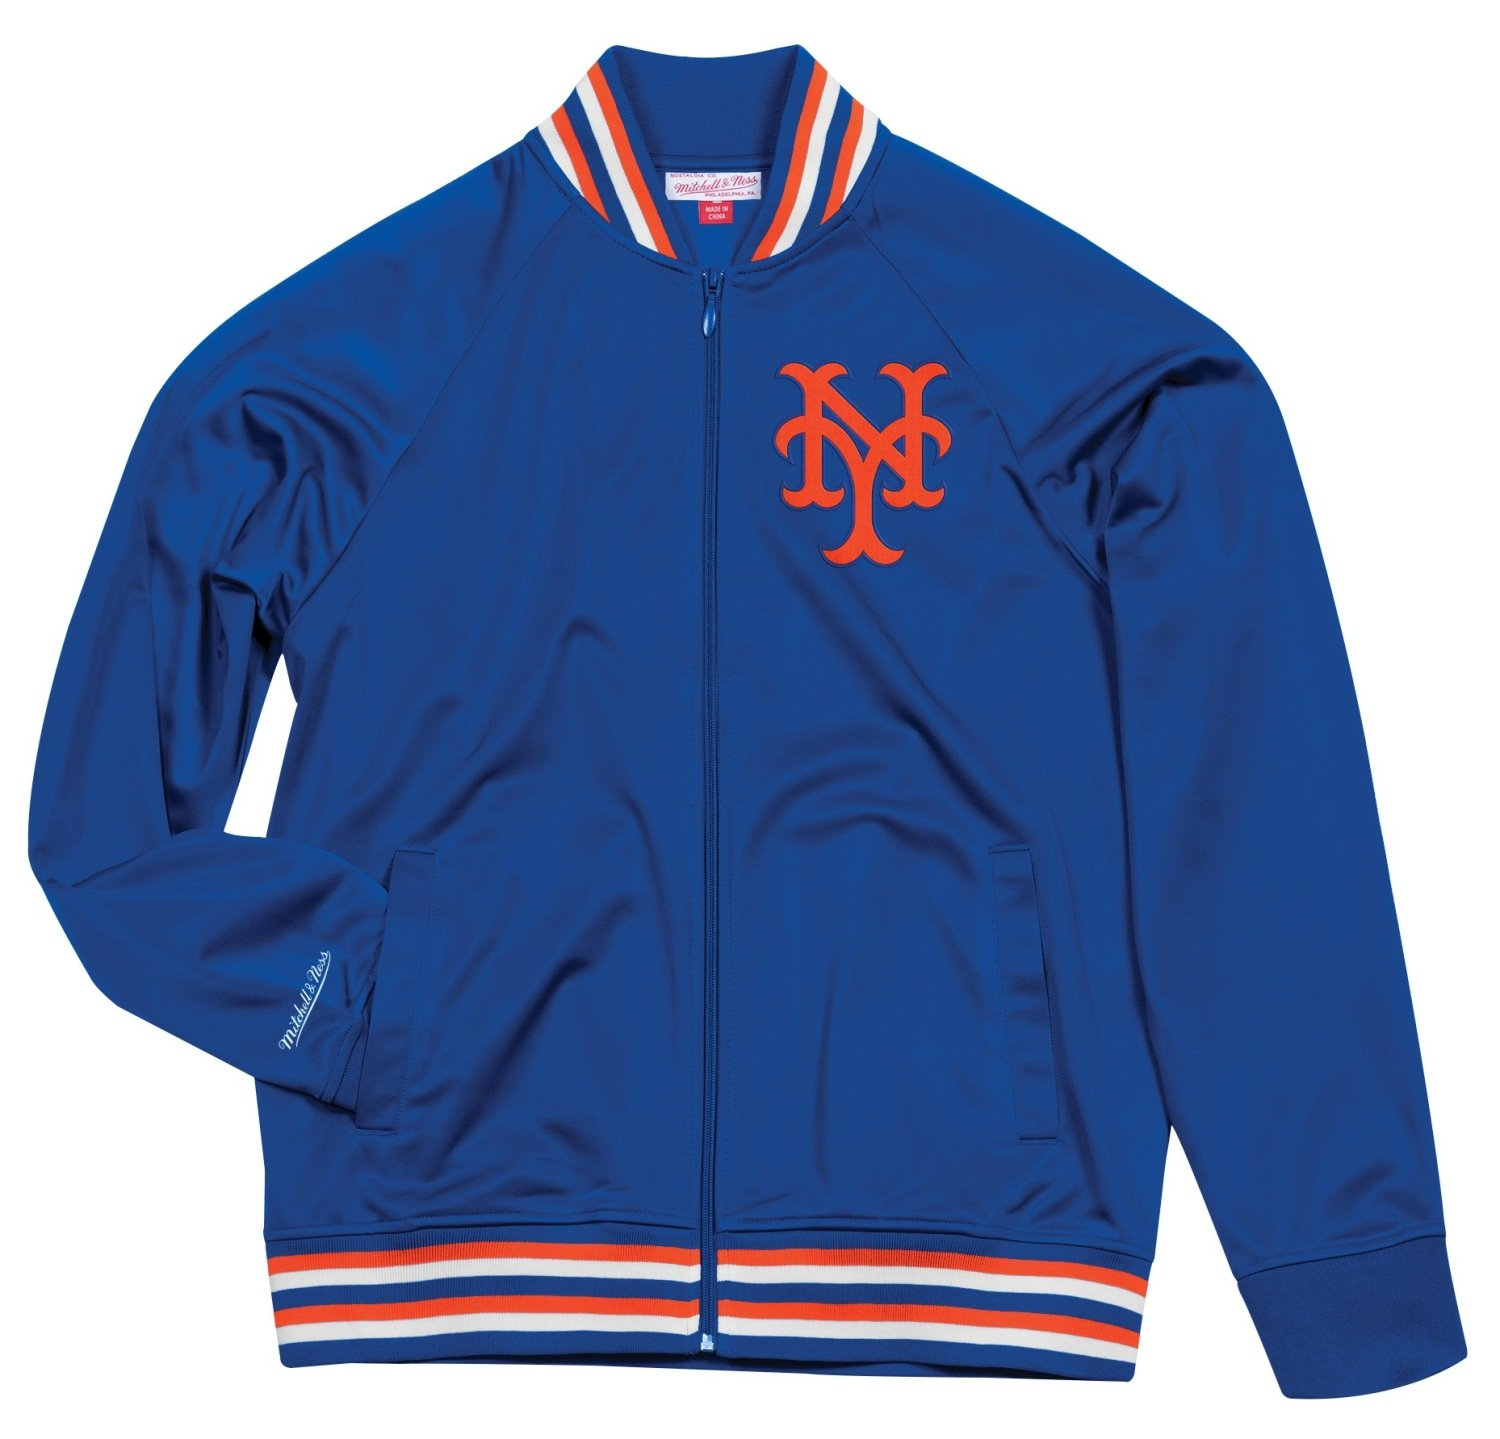 separation shoes 57a3a b2264 Amazon.com : New York Mets Mitchell & Ness MLB Men's